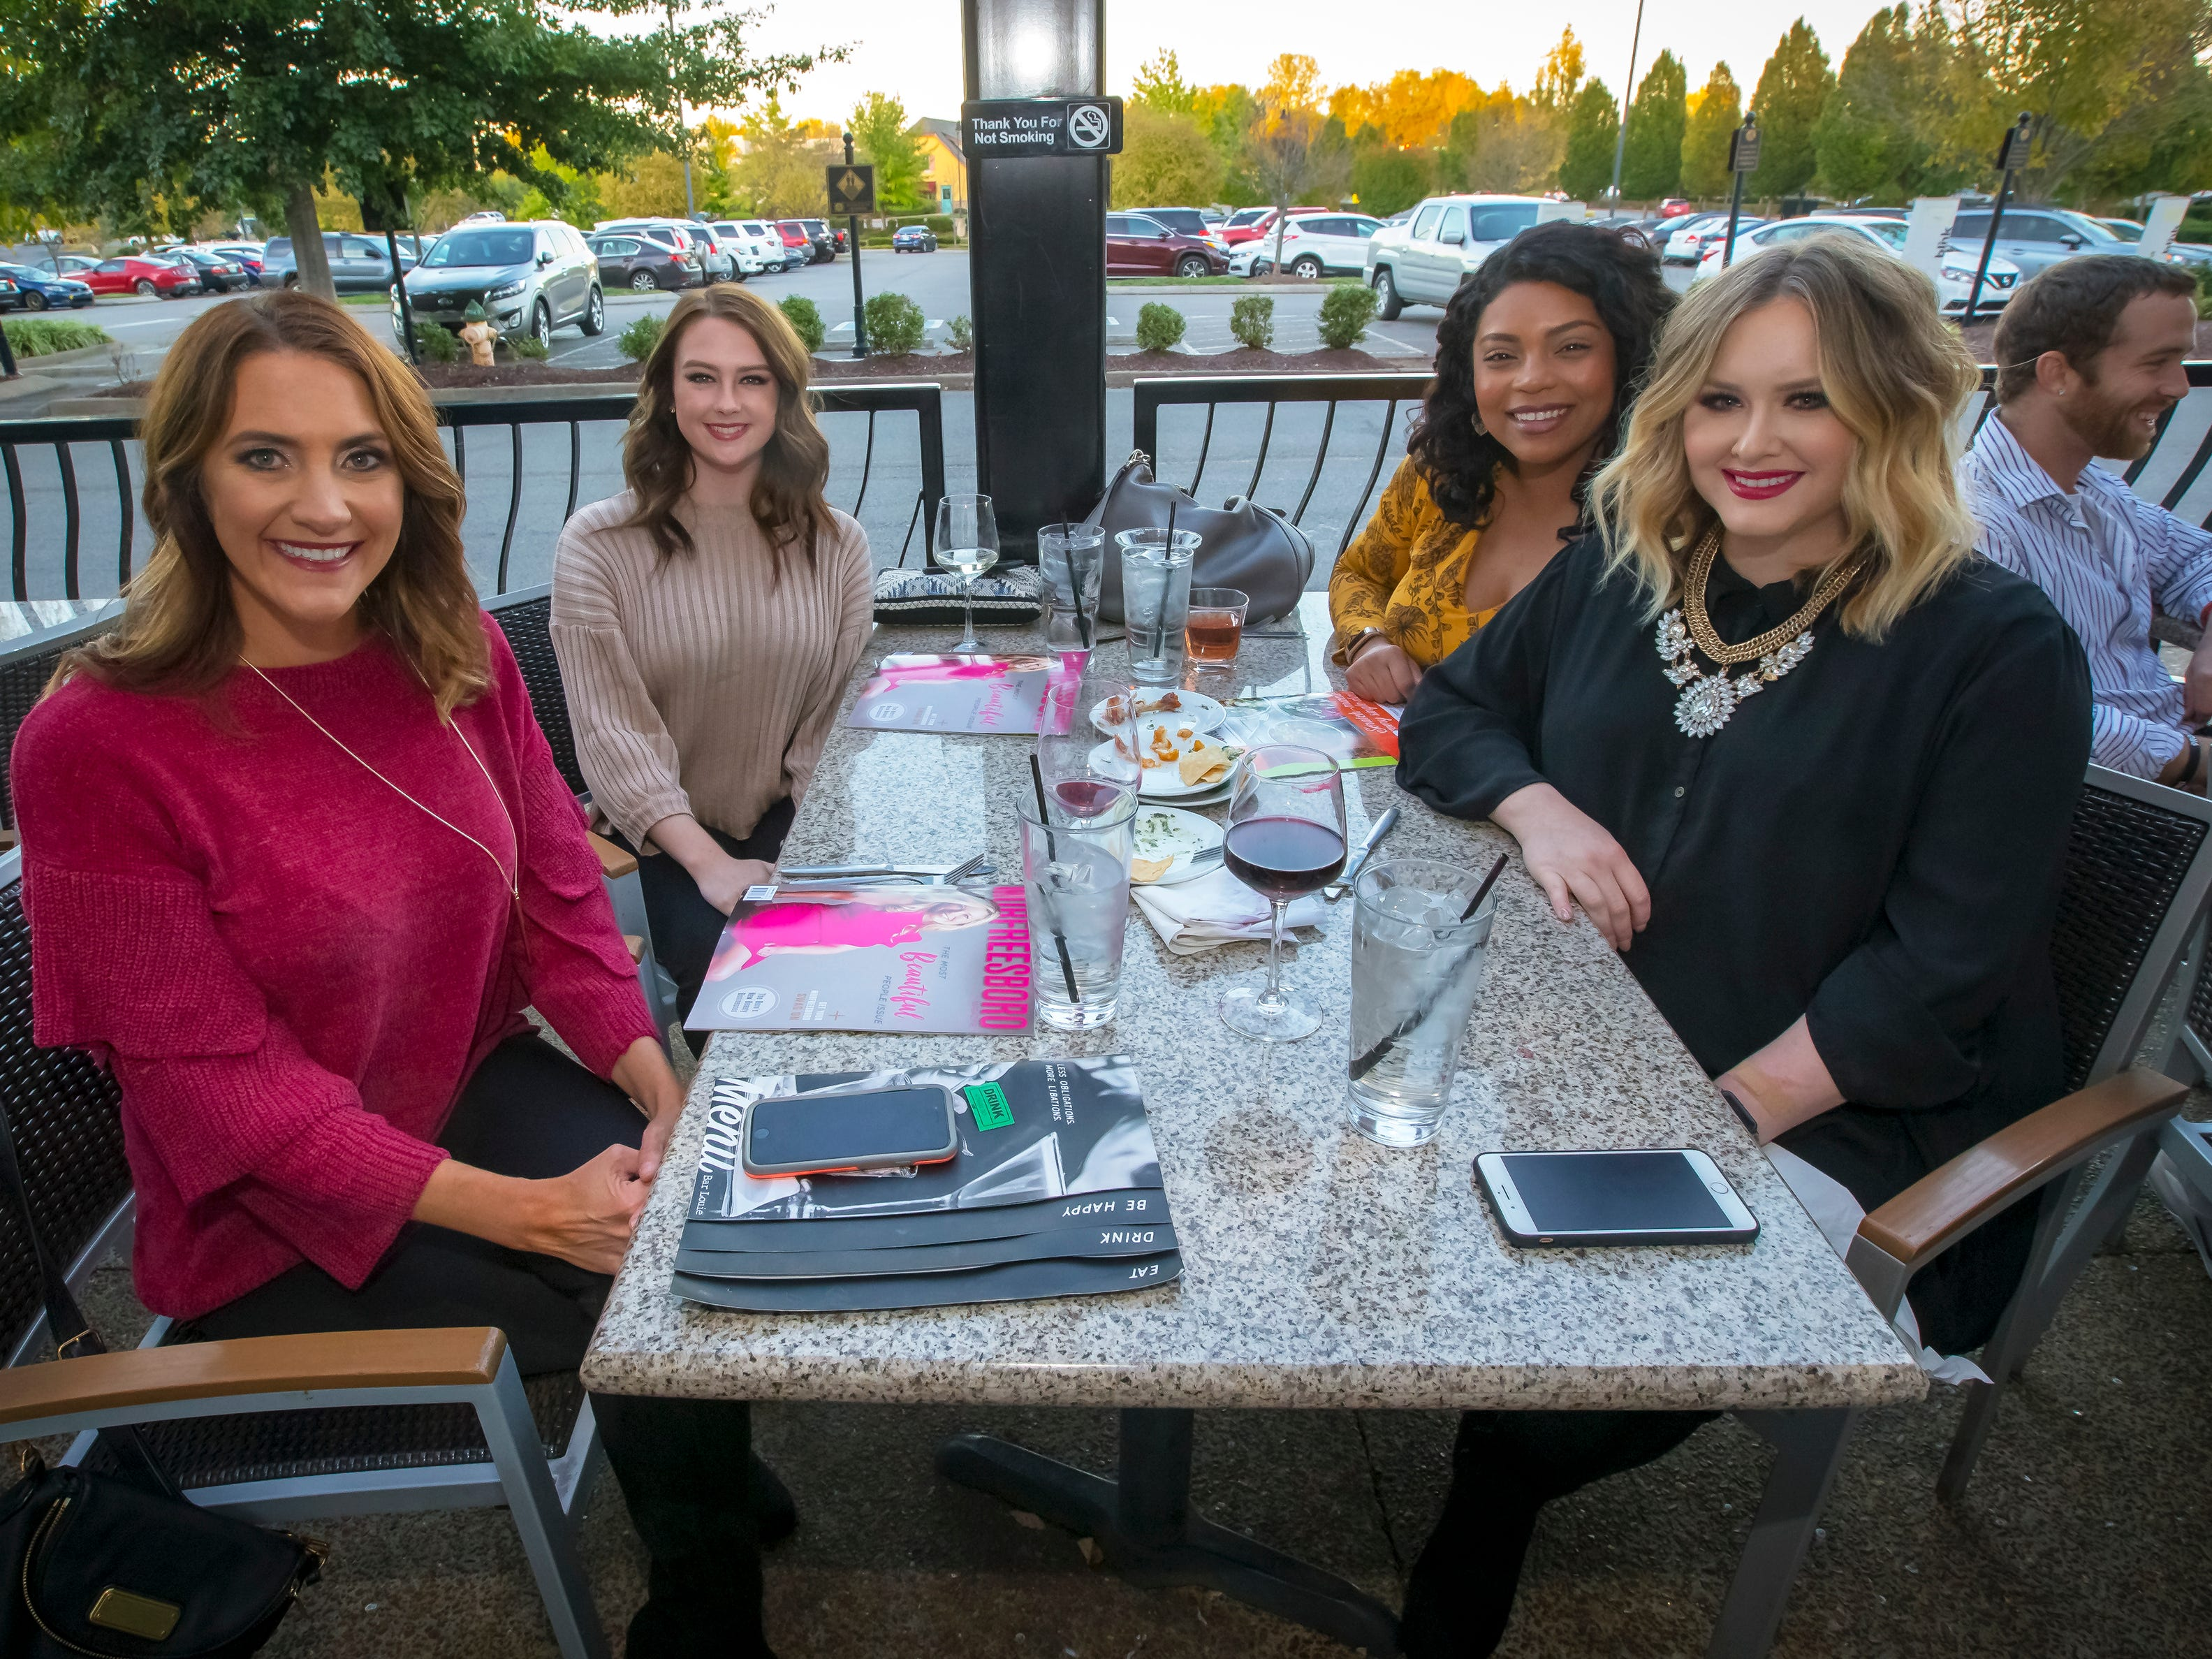 Jessica Shields, Brena Pulley, Amy McElroy and Krystal Dickerson at the Murfreesboro Magazine Most Beautiful People event held at Bar Louie.photo by Jim Davis/for the DNJ